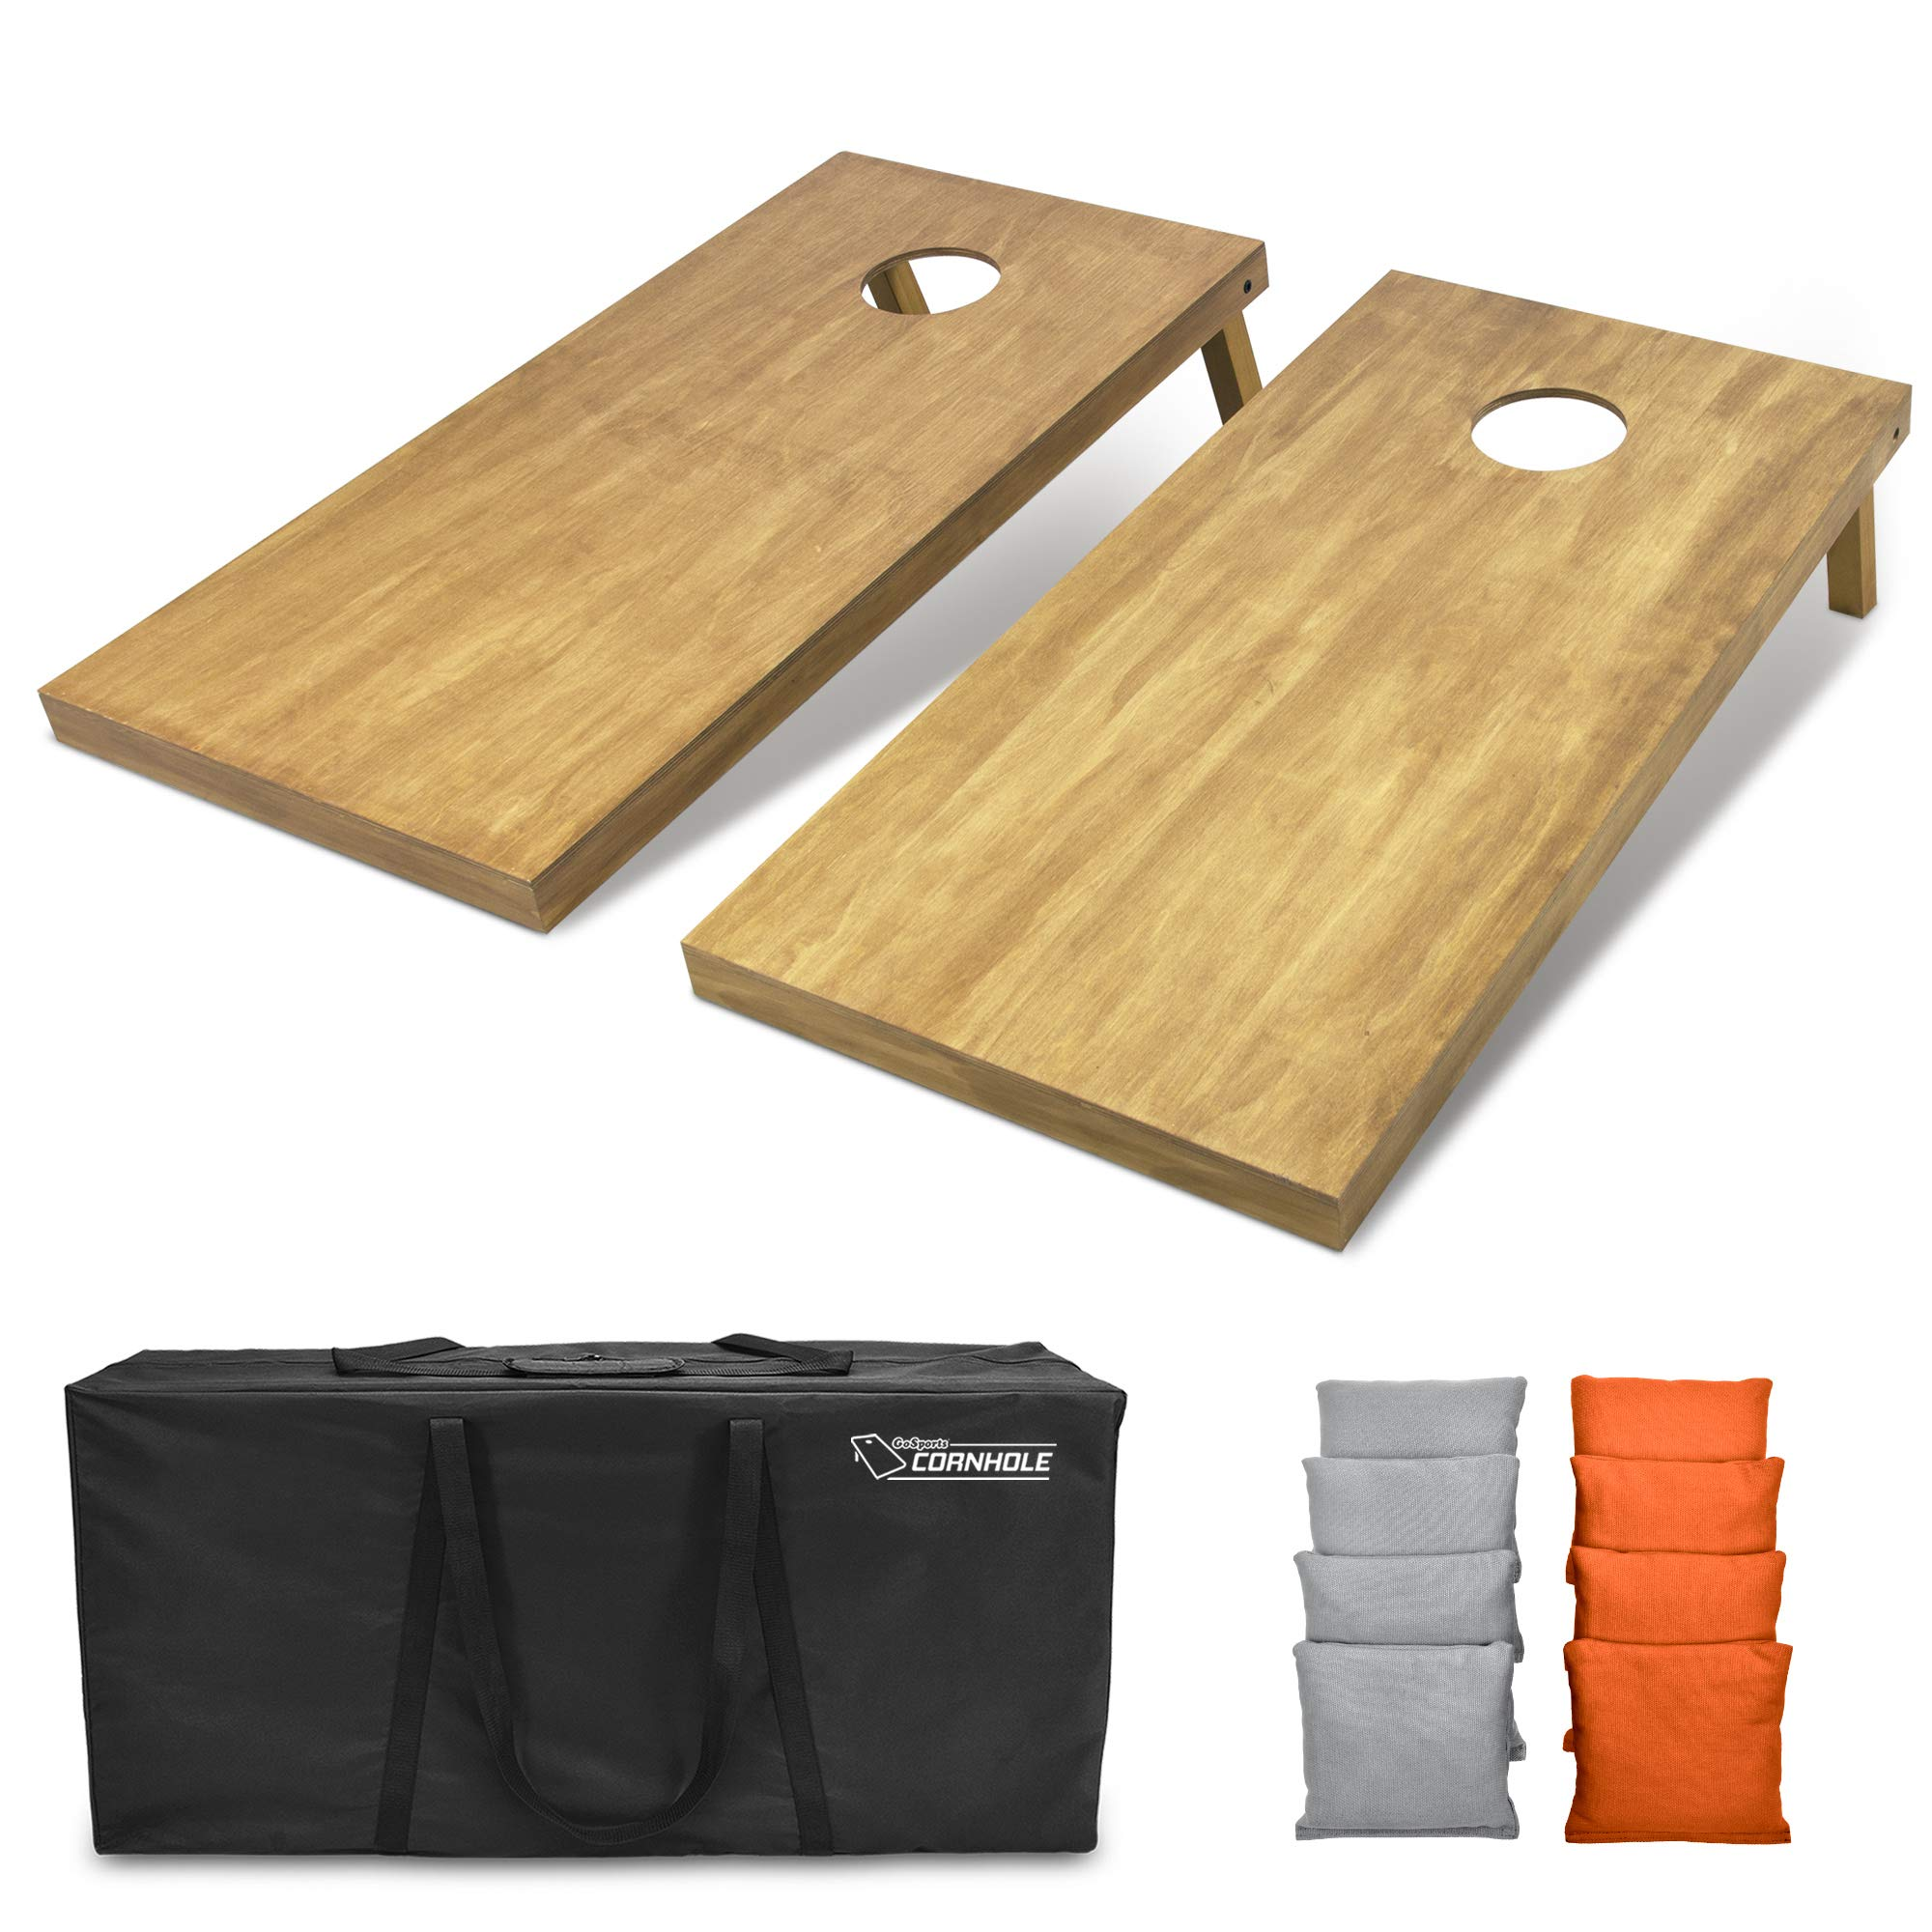 GoSports 4'x2' Regulation Size Wooden Cornhole Boards Set | Includes Carrying Case and Bean Bags (Choose Your Colors) Over 100 Color Combinations by GoSports